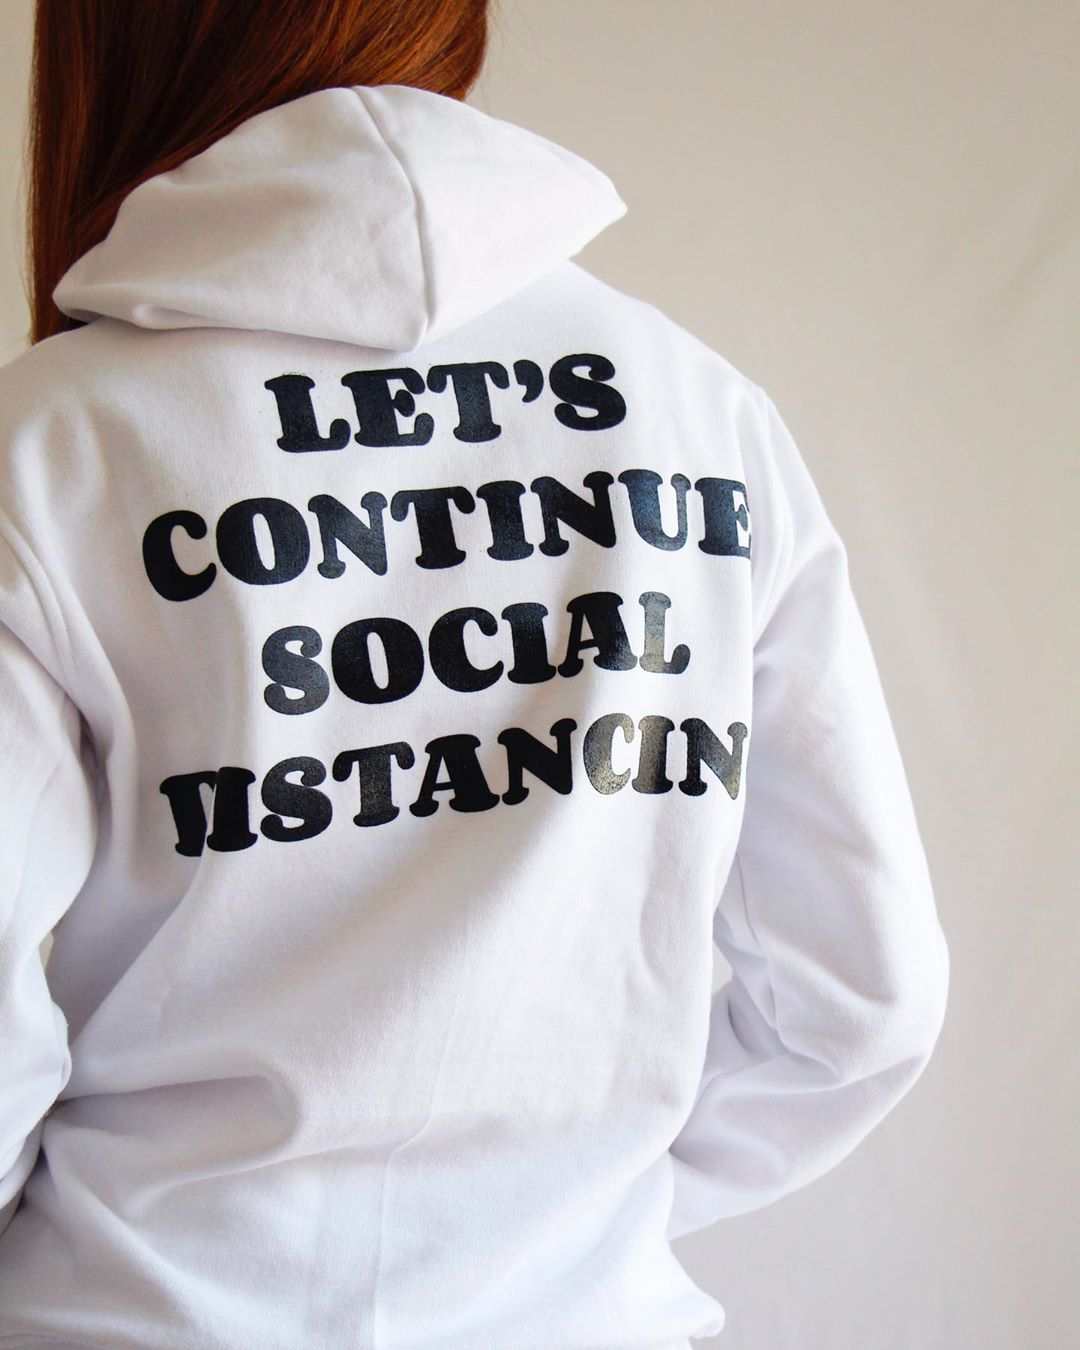 A woman wears a white hoodie with the words 'Let's continue social distancing' in black lettering on the back.